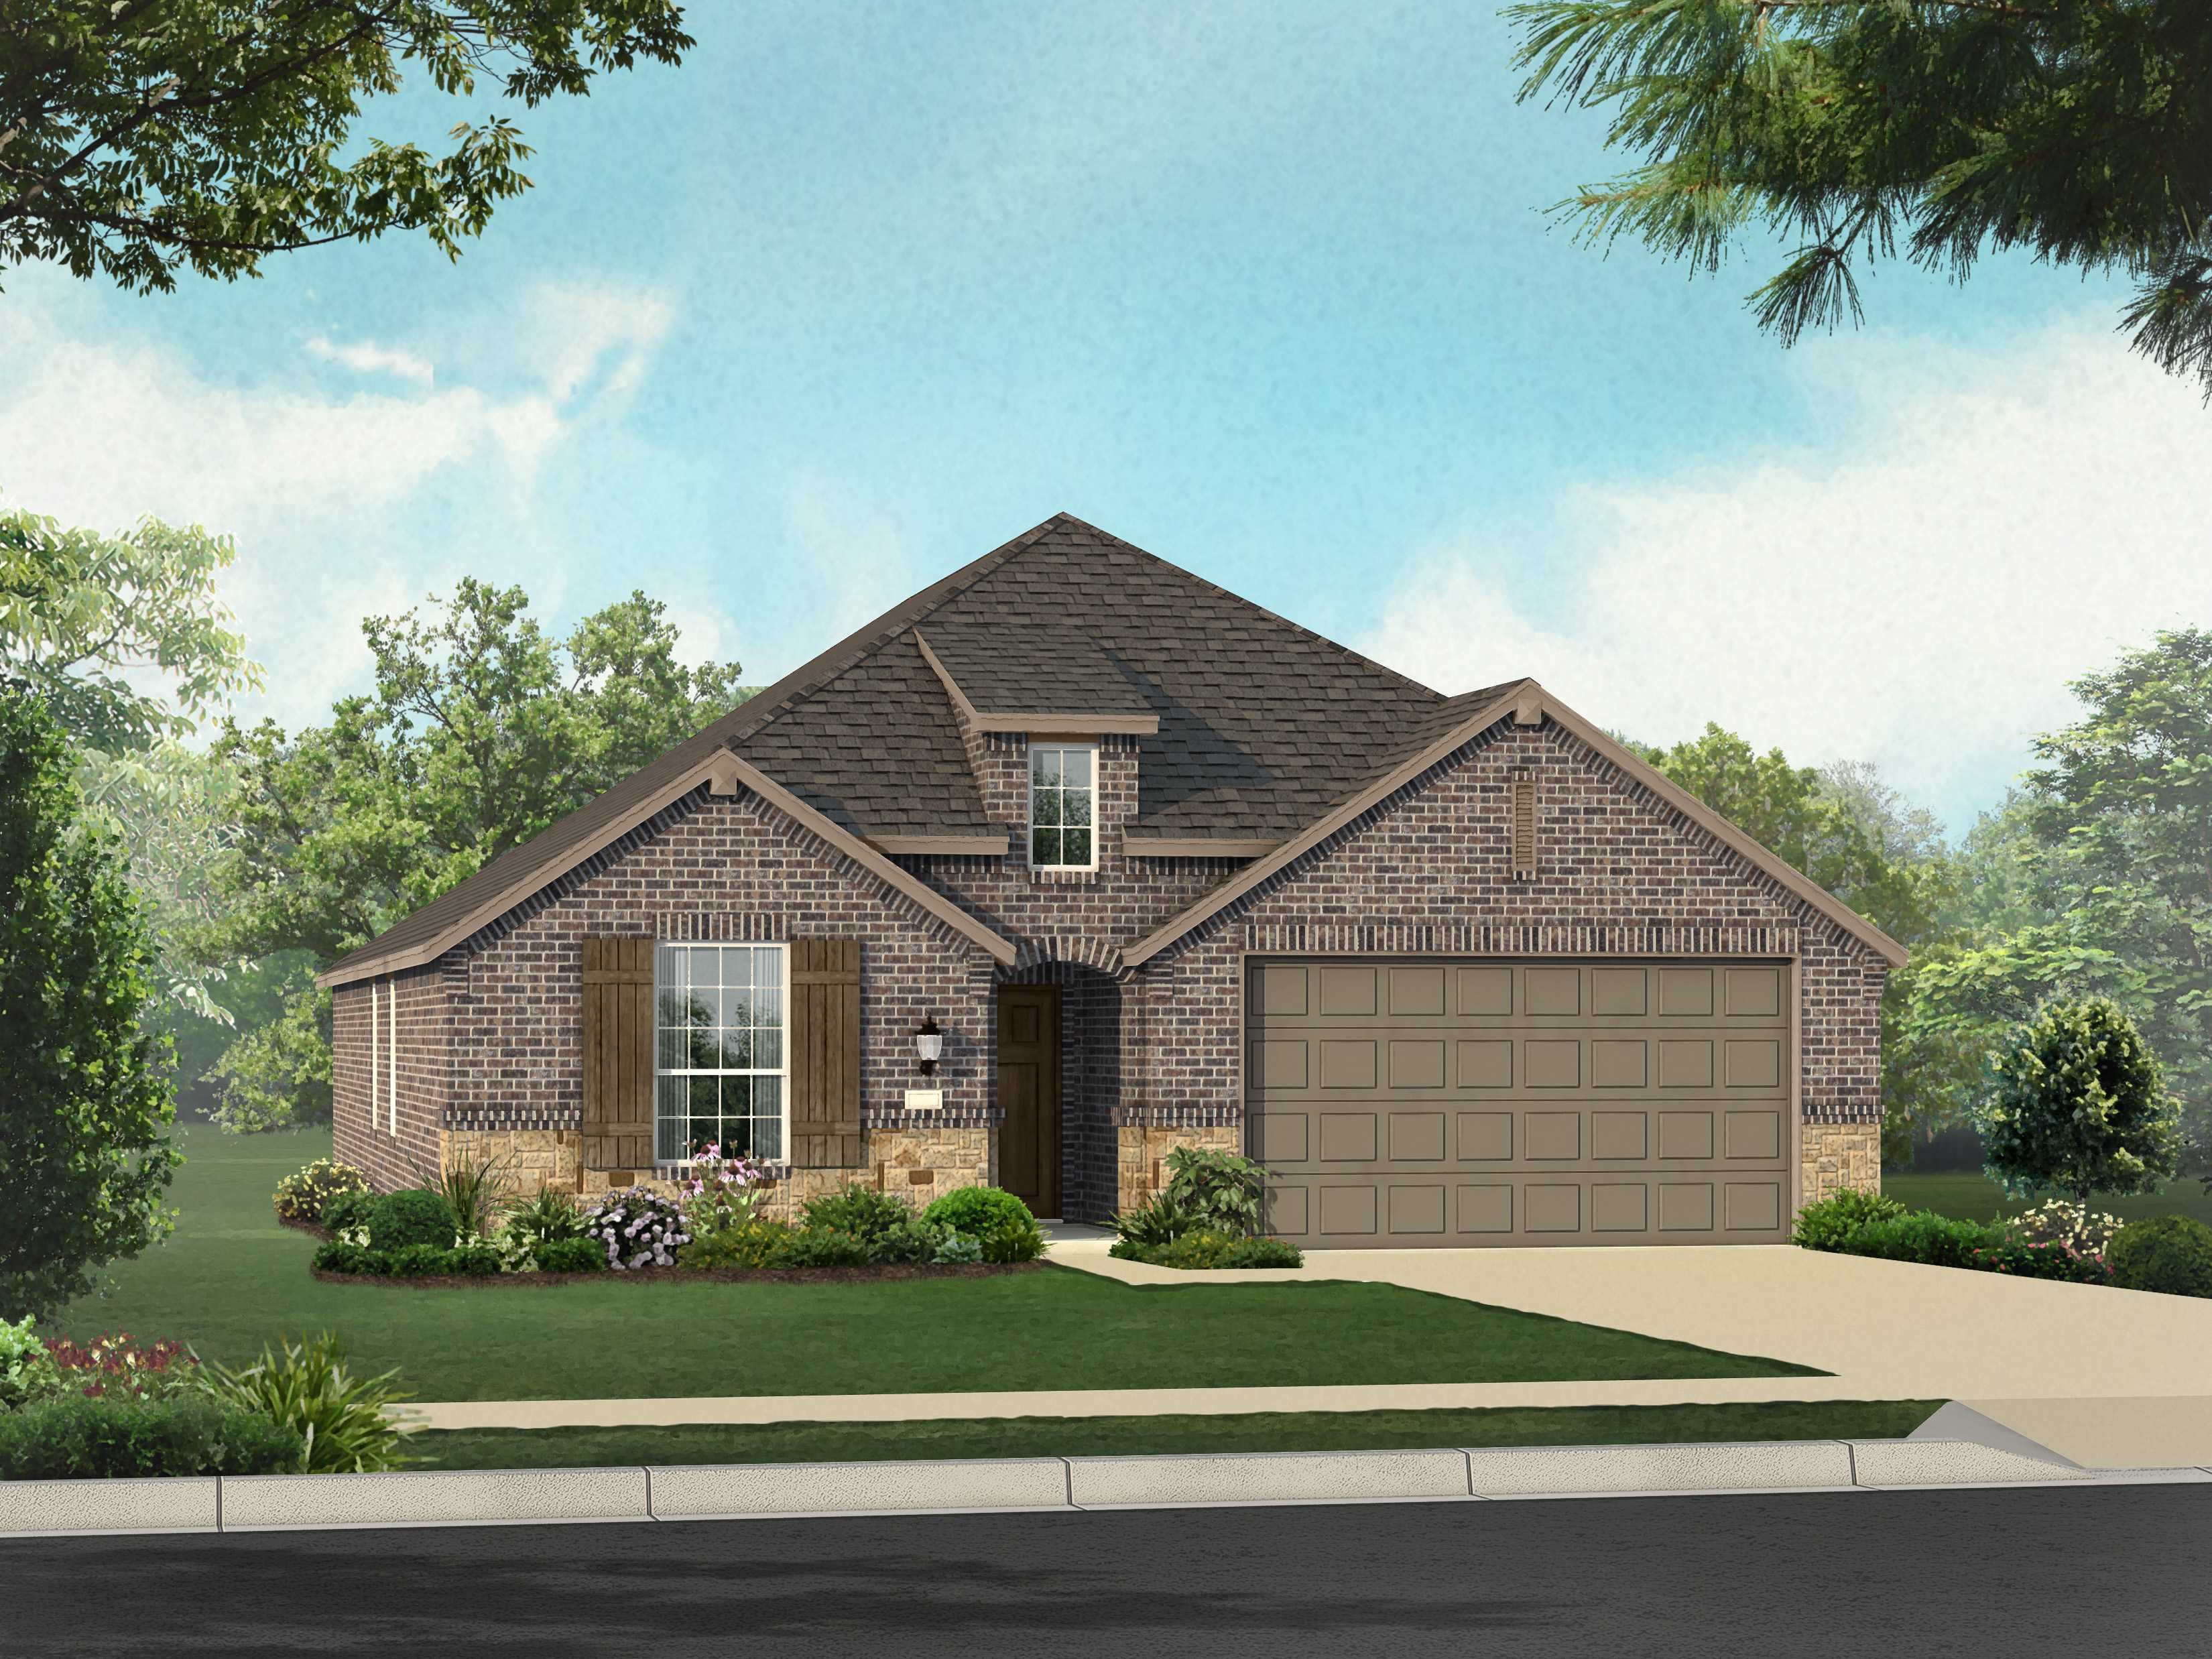 Highland homes siena plan ashwood 1329226 round rock for Ashwood homes